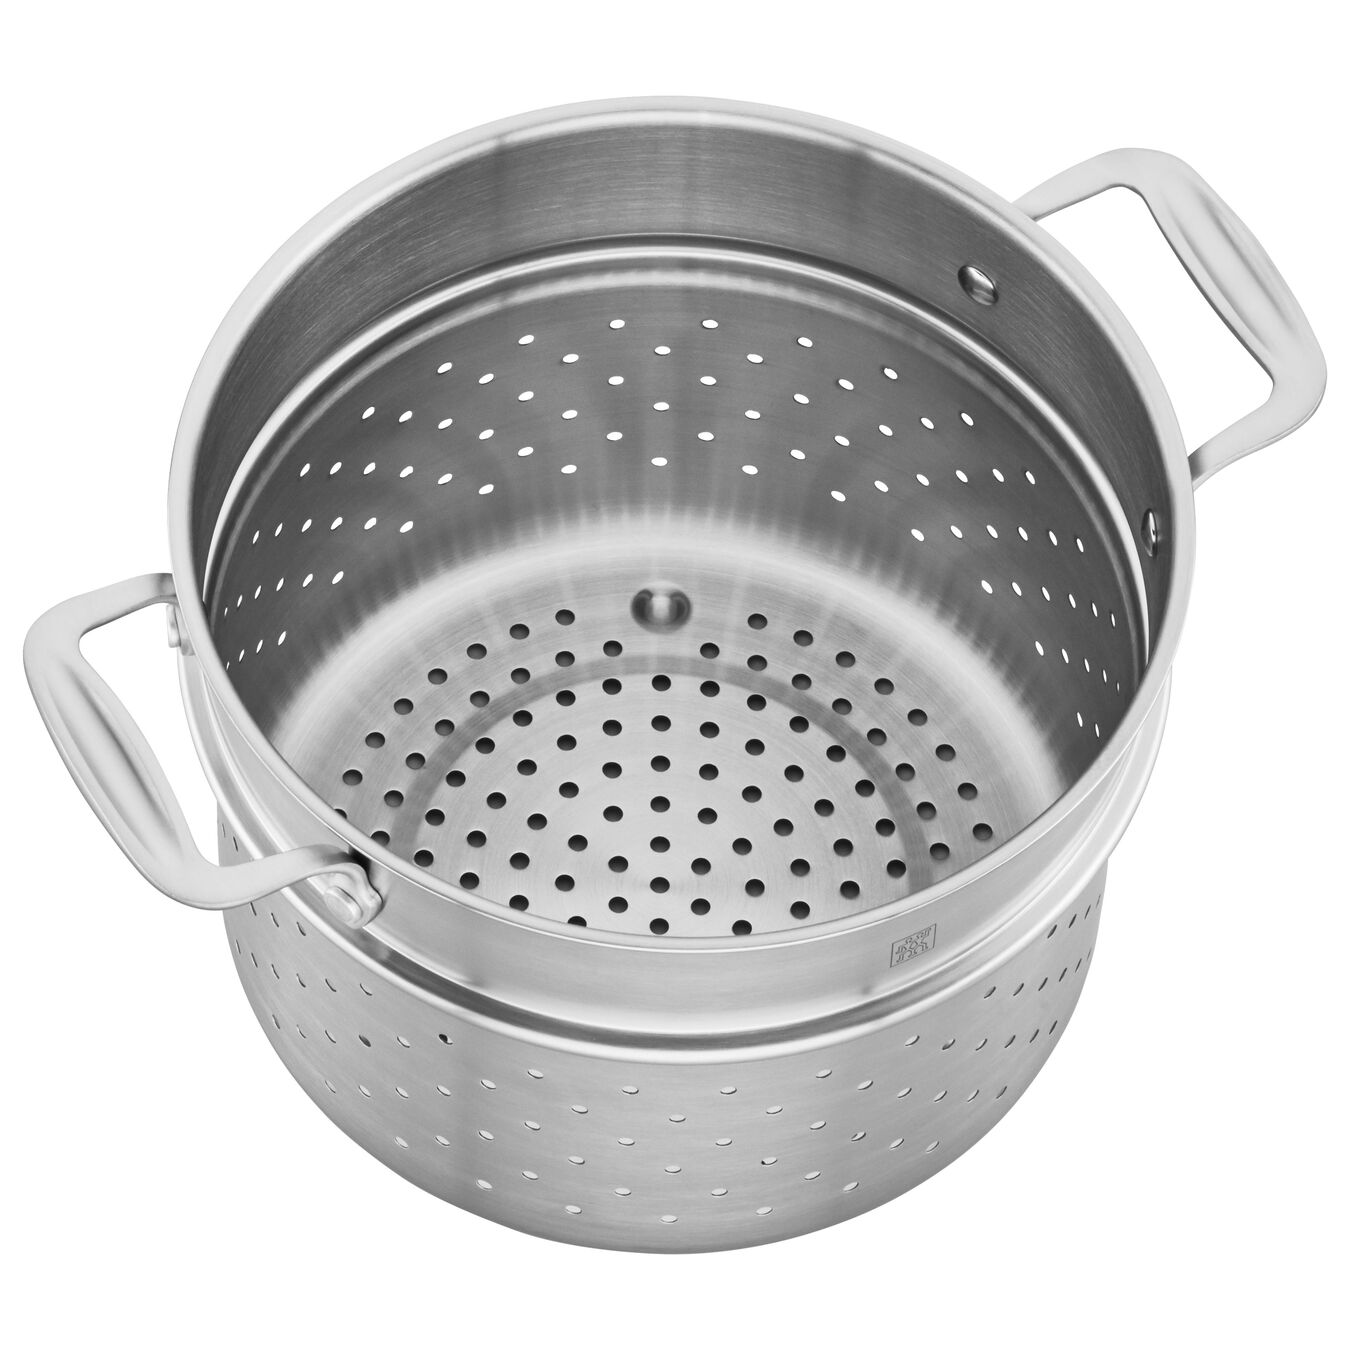 3-ply 6-qt Stainless Steel Pasta Insert (Fits 6-qt Dutch Oven),,large 2